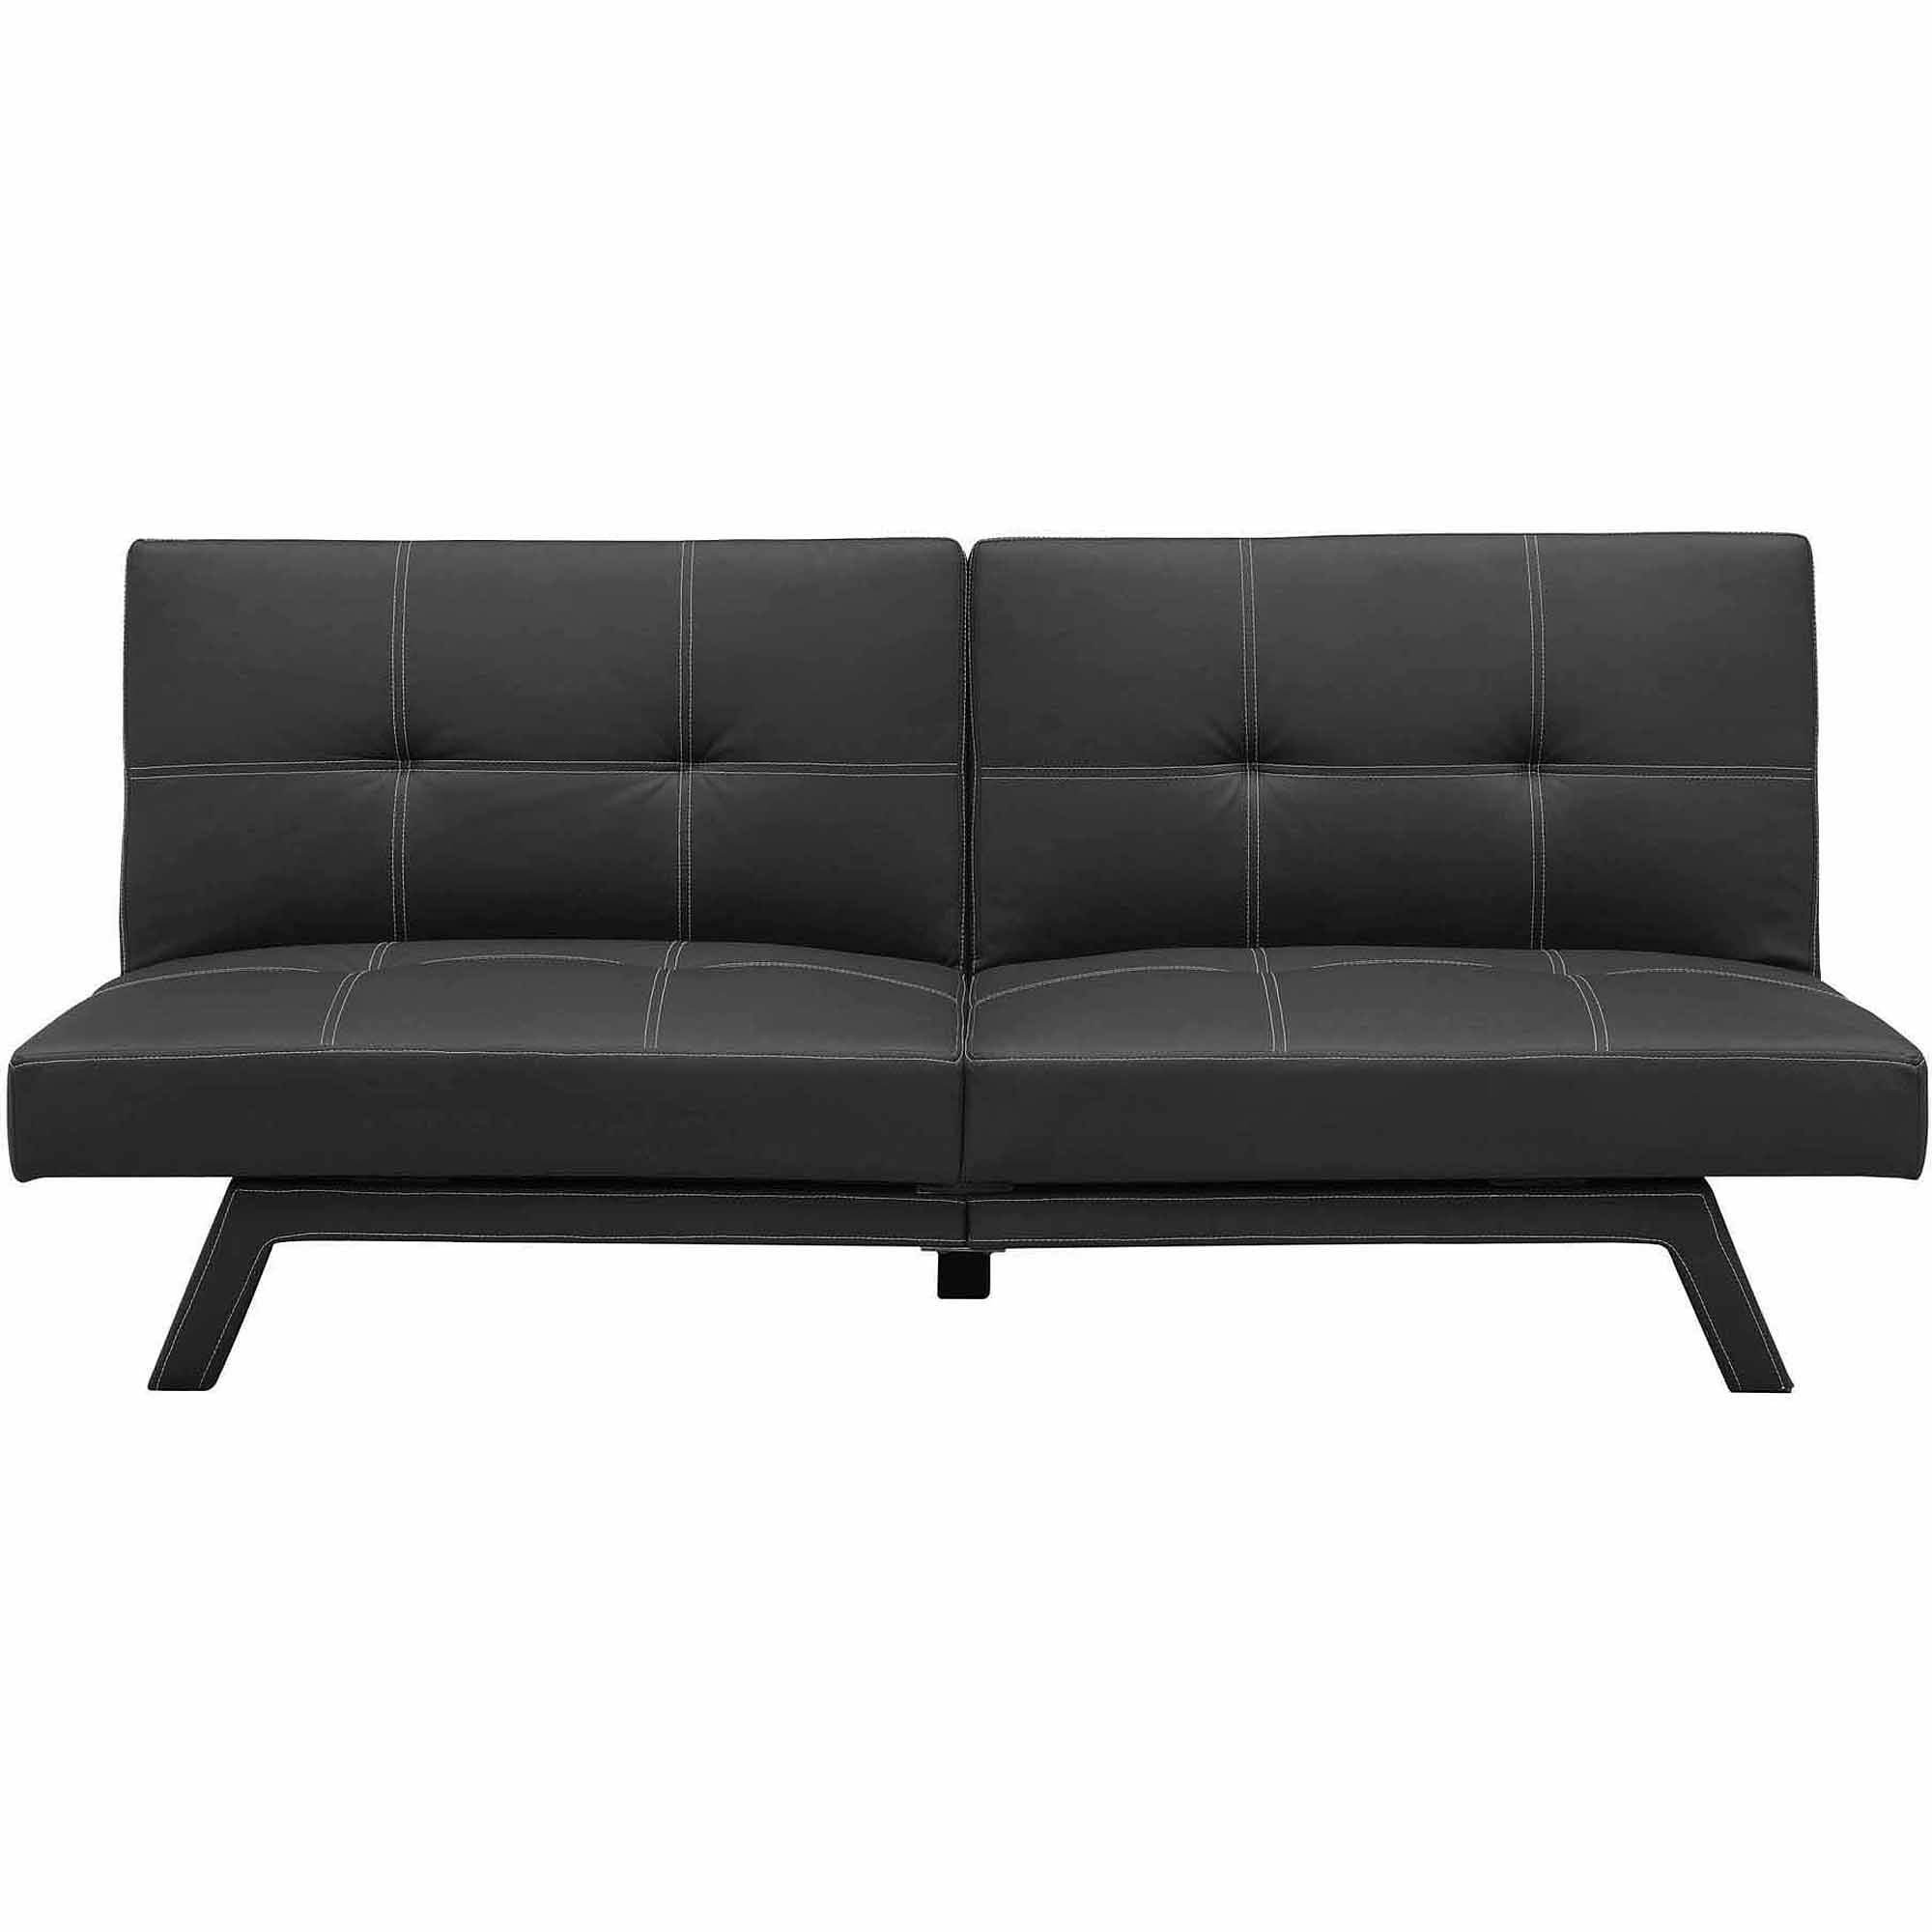 Delaney Split Back Futon Sofa Bed Multiple Colors Walmart